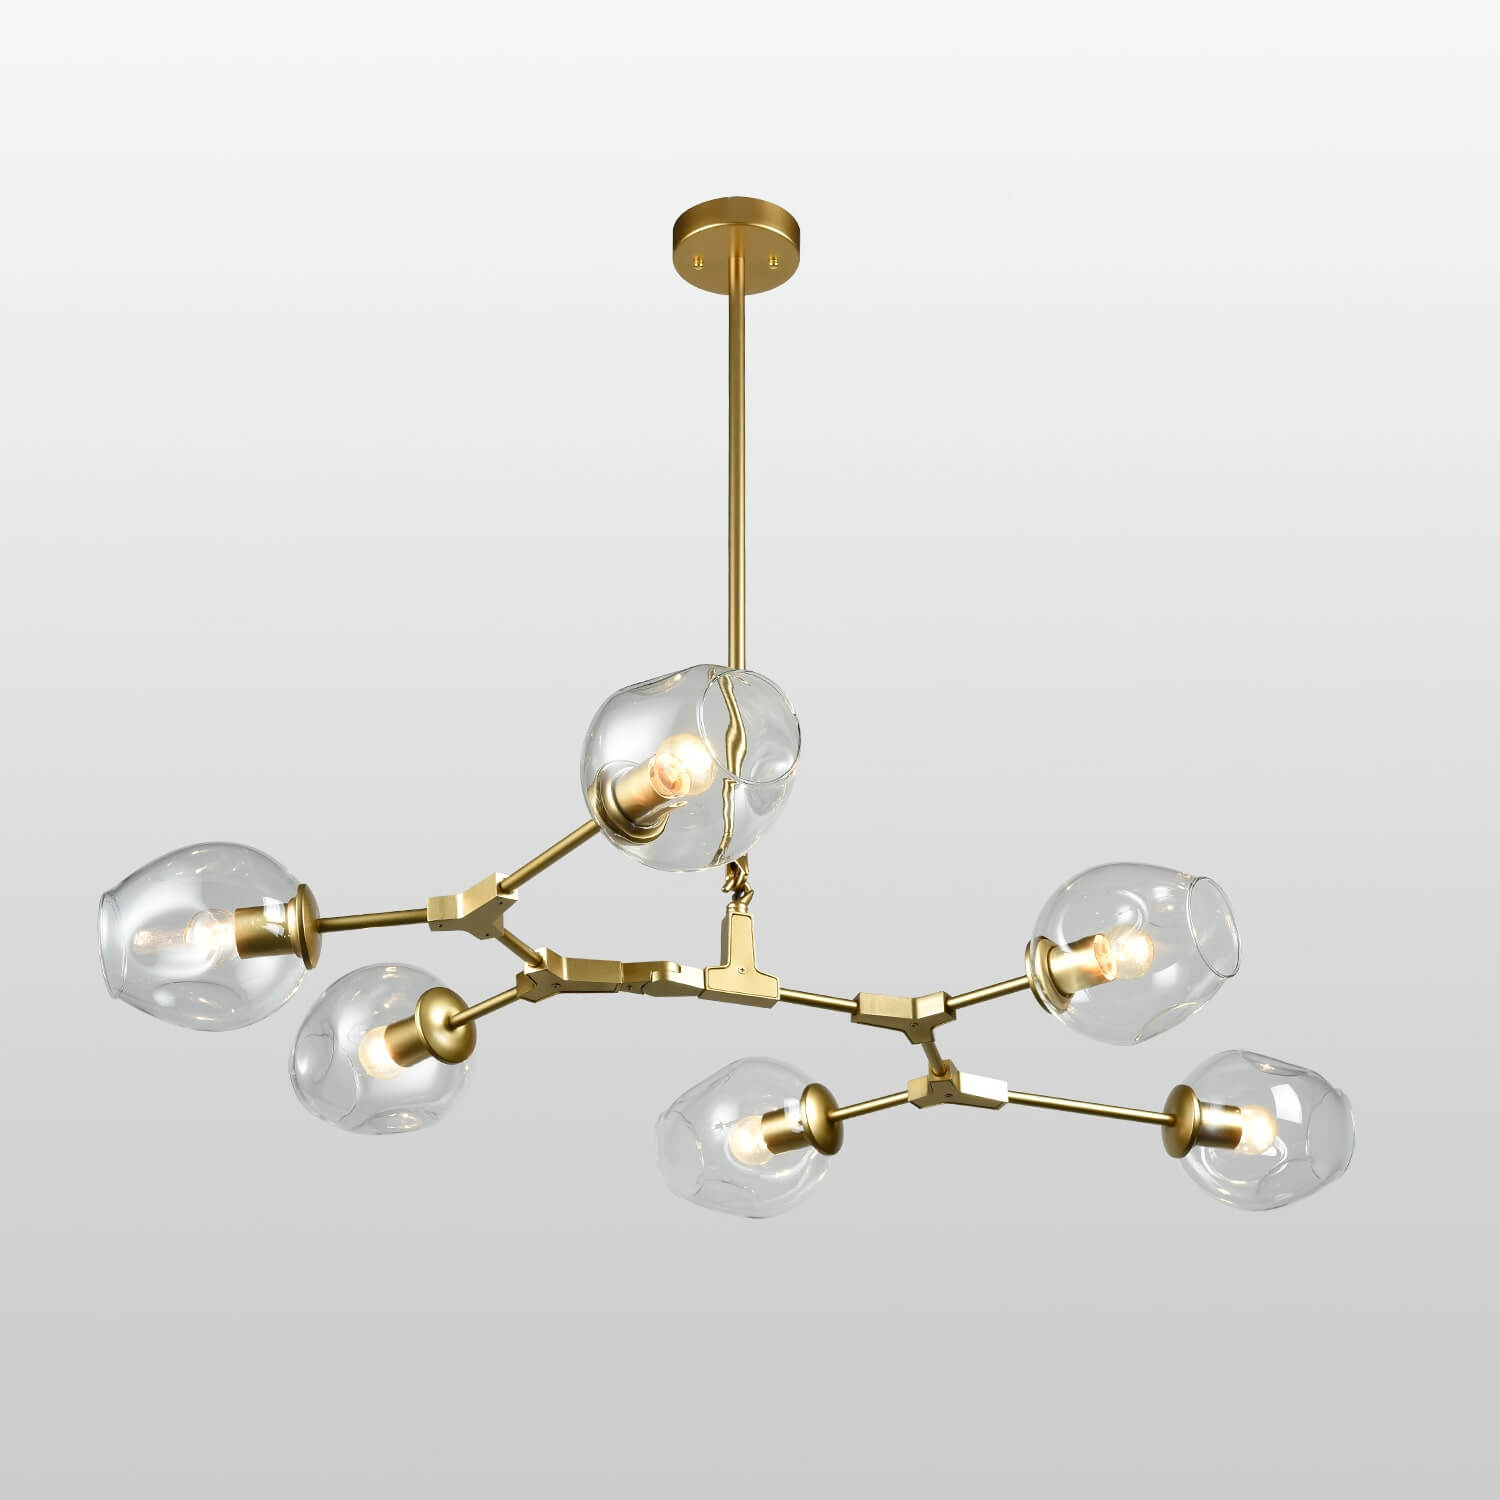 Modern Chandelier Gold Dinging Room Fixture with Clear Glass - 6 Light